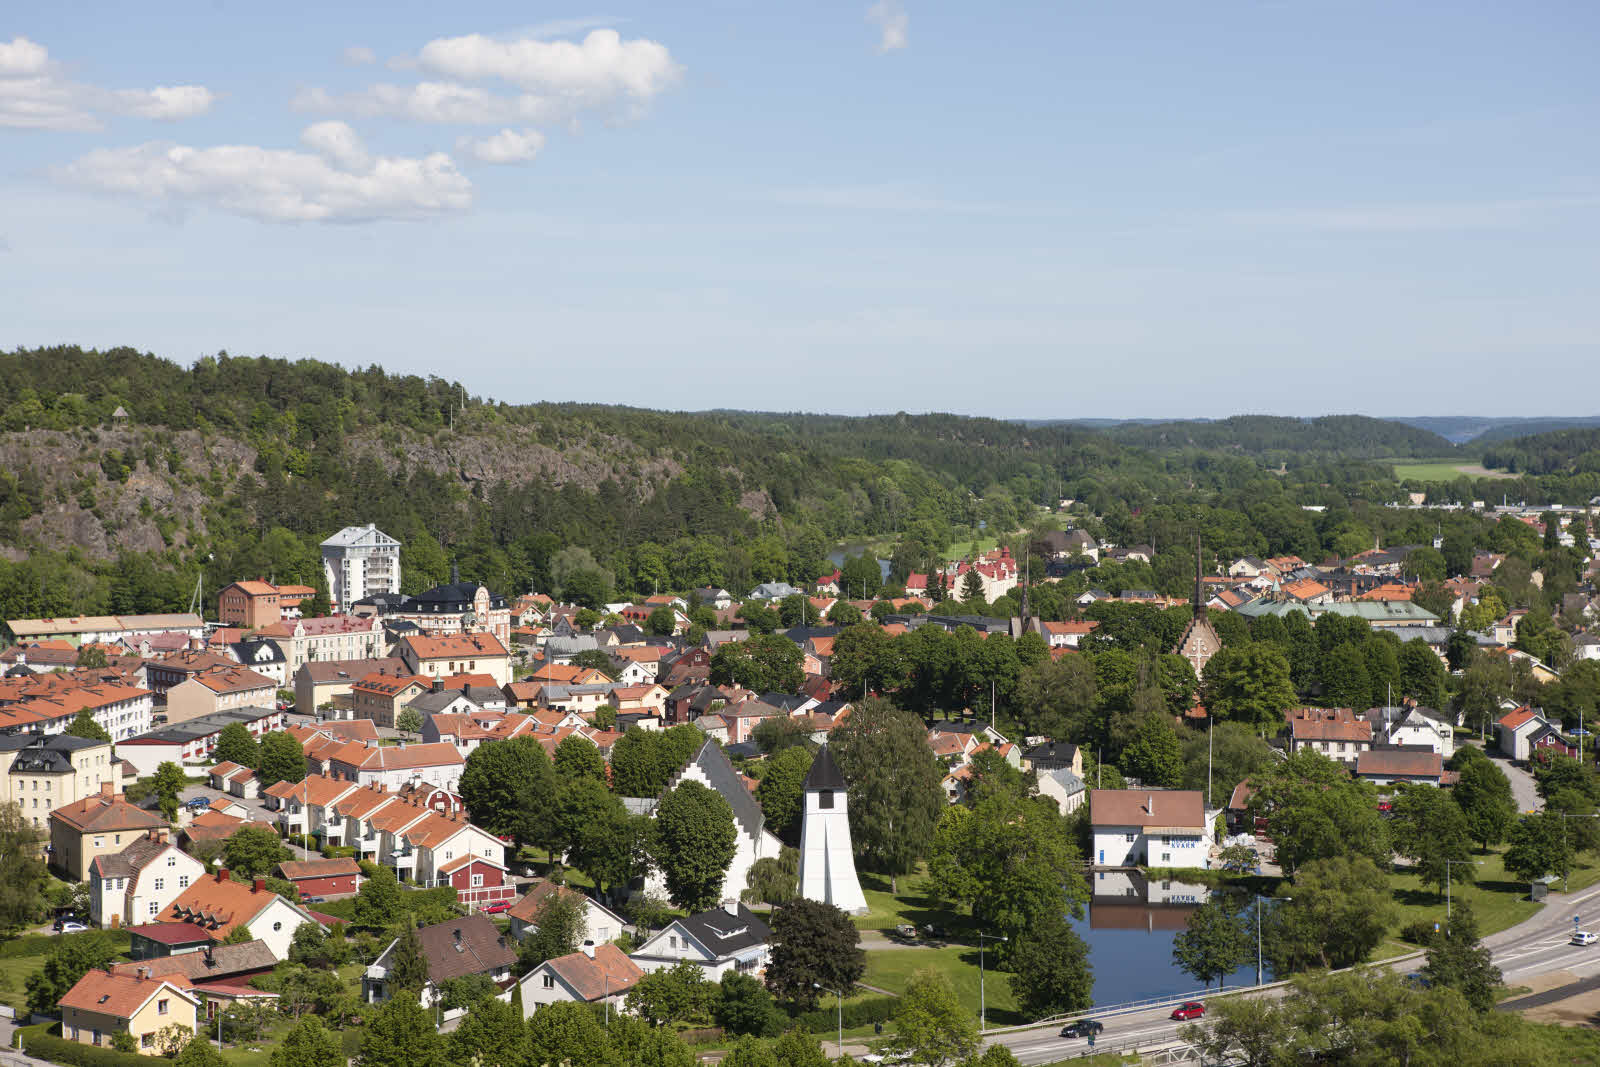 View of Söderköping's centre, with a forest in the background.